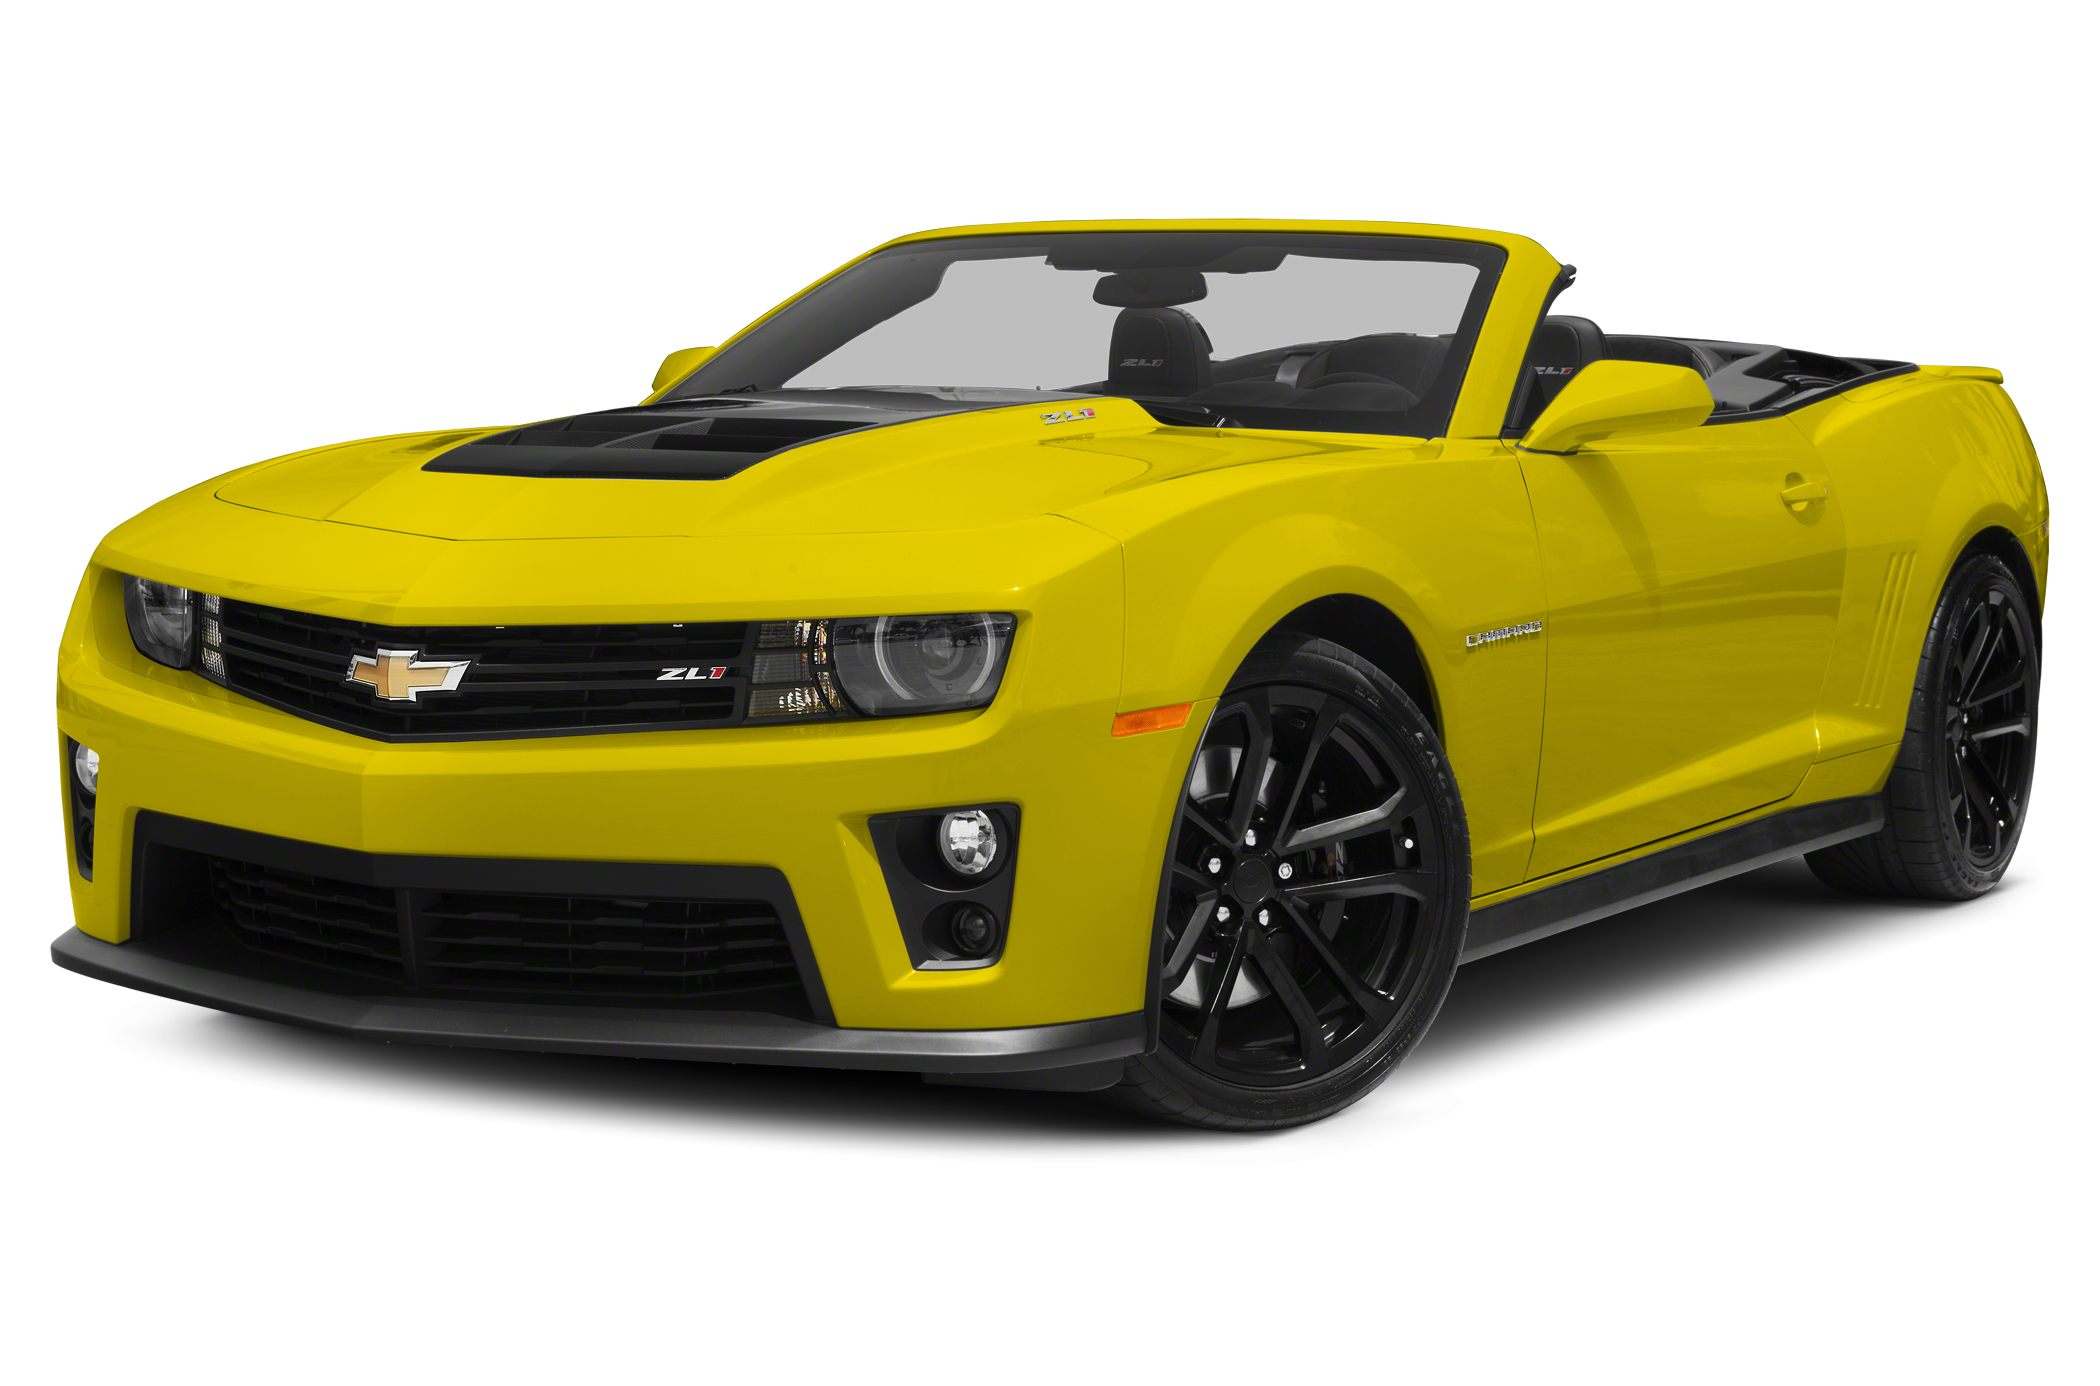 2015 Chevrolet Camaro ZL1 2dr Convertible Pricing and Options